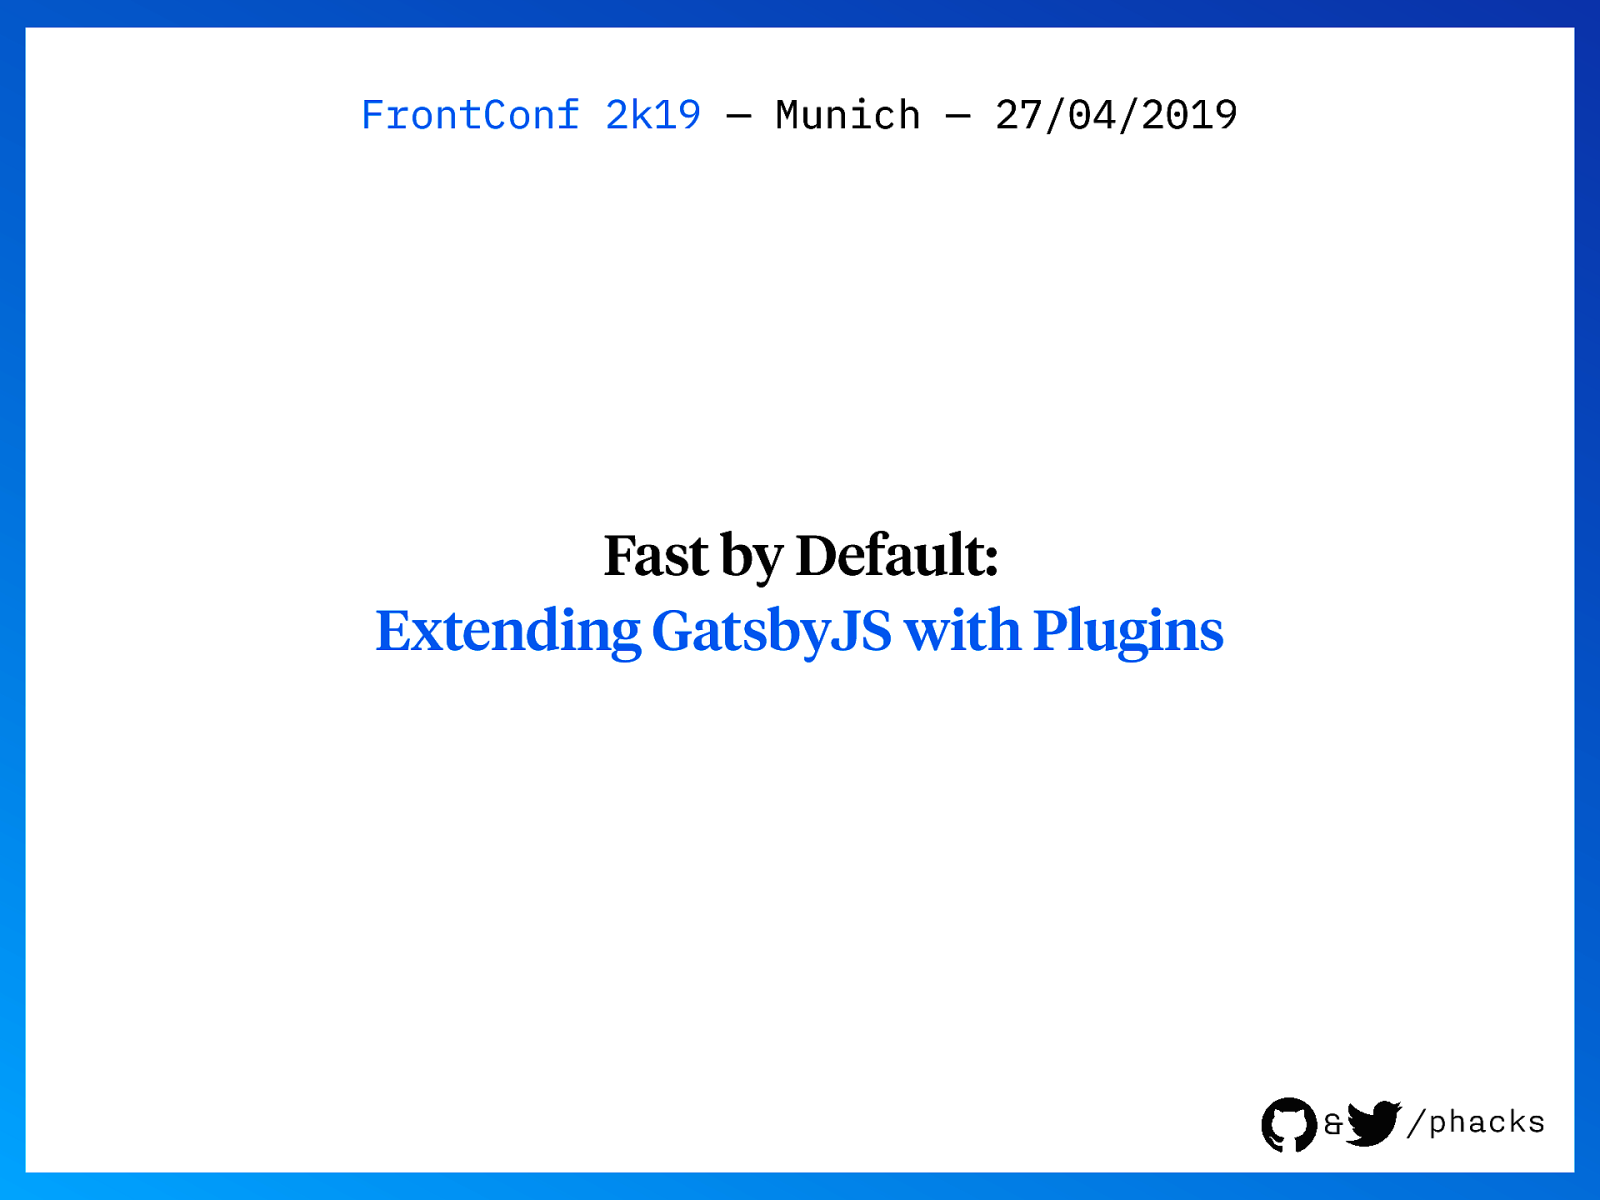 Fast by Default: Extending GatsbyJS with Plugins